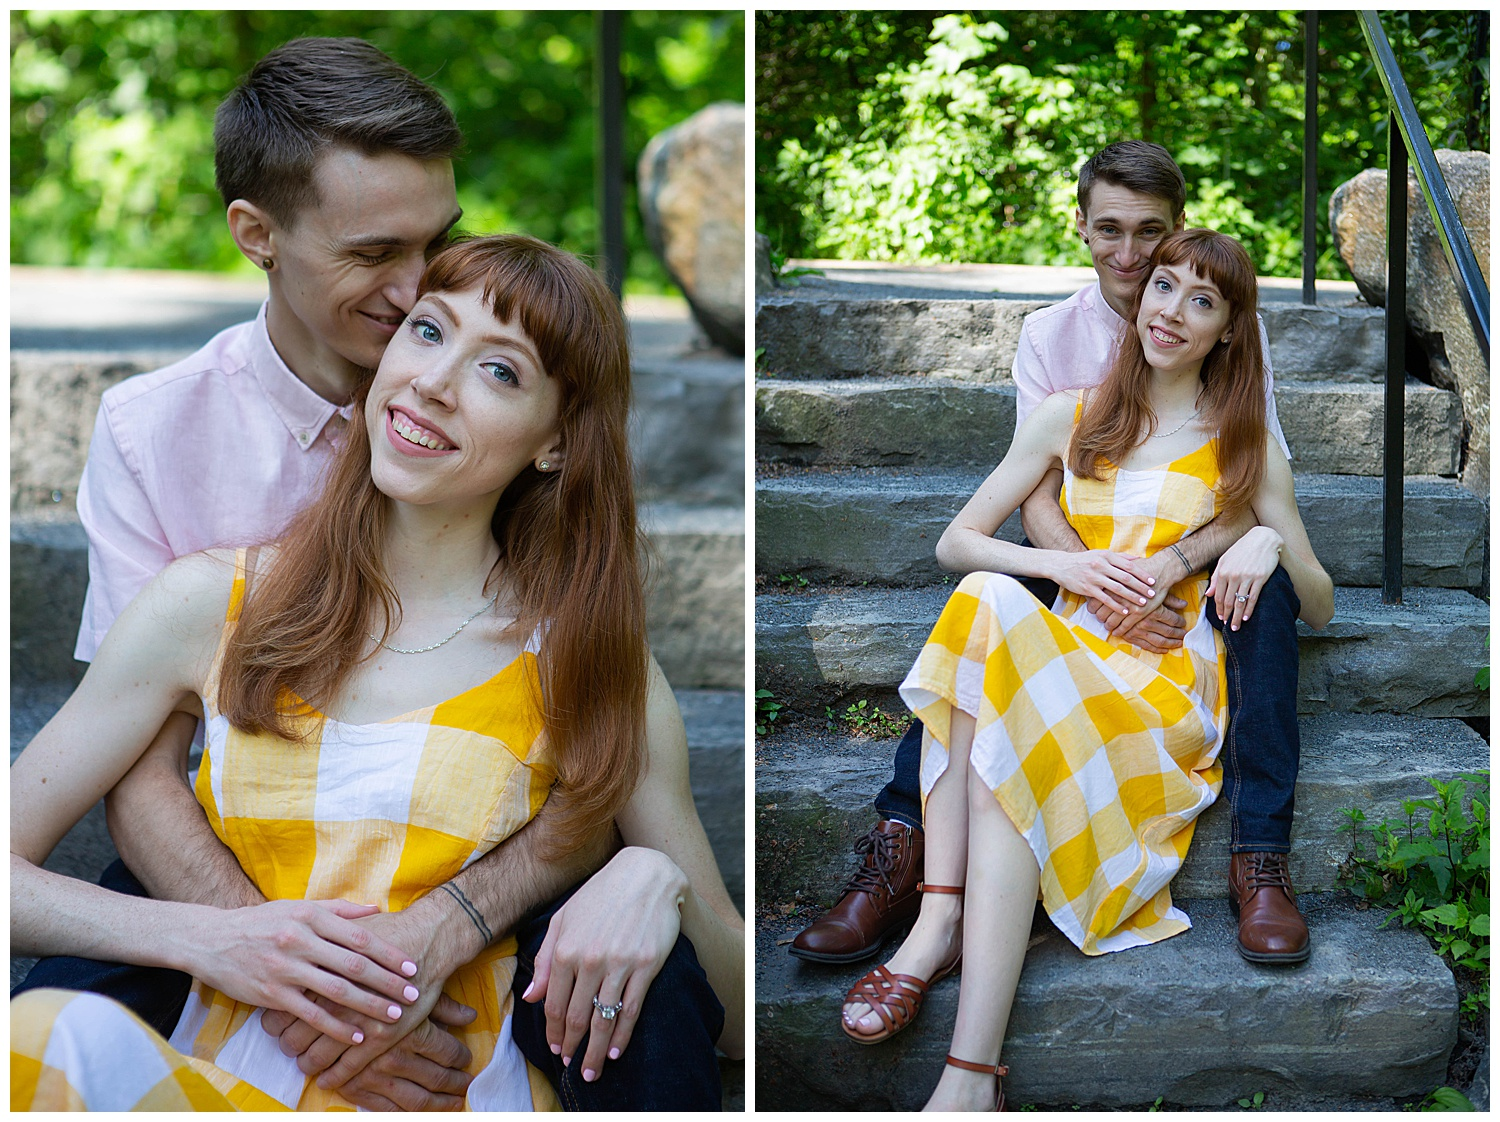 Kate-Alison-Photography-Central-Park-Engagement-Session-Madison-Alex-18.jpg